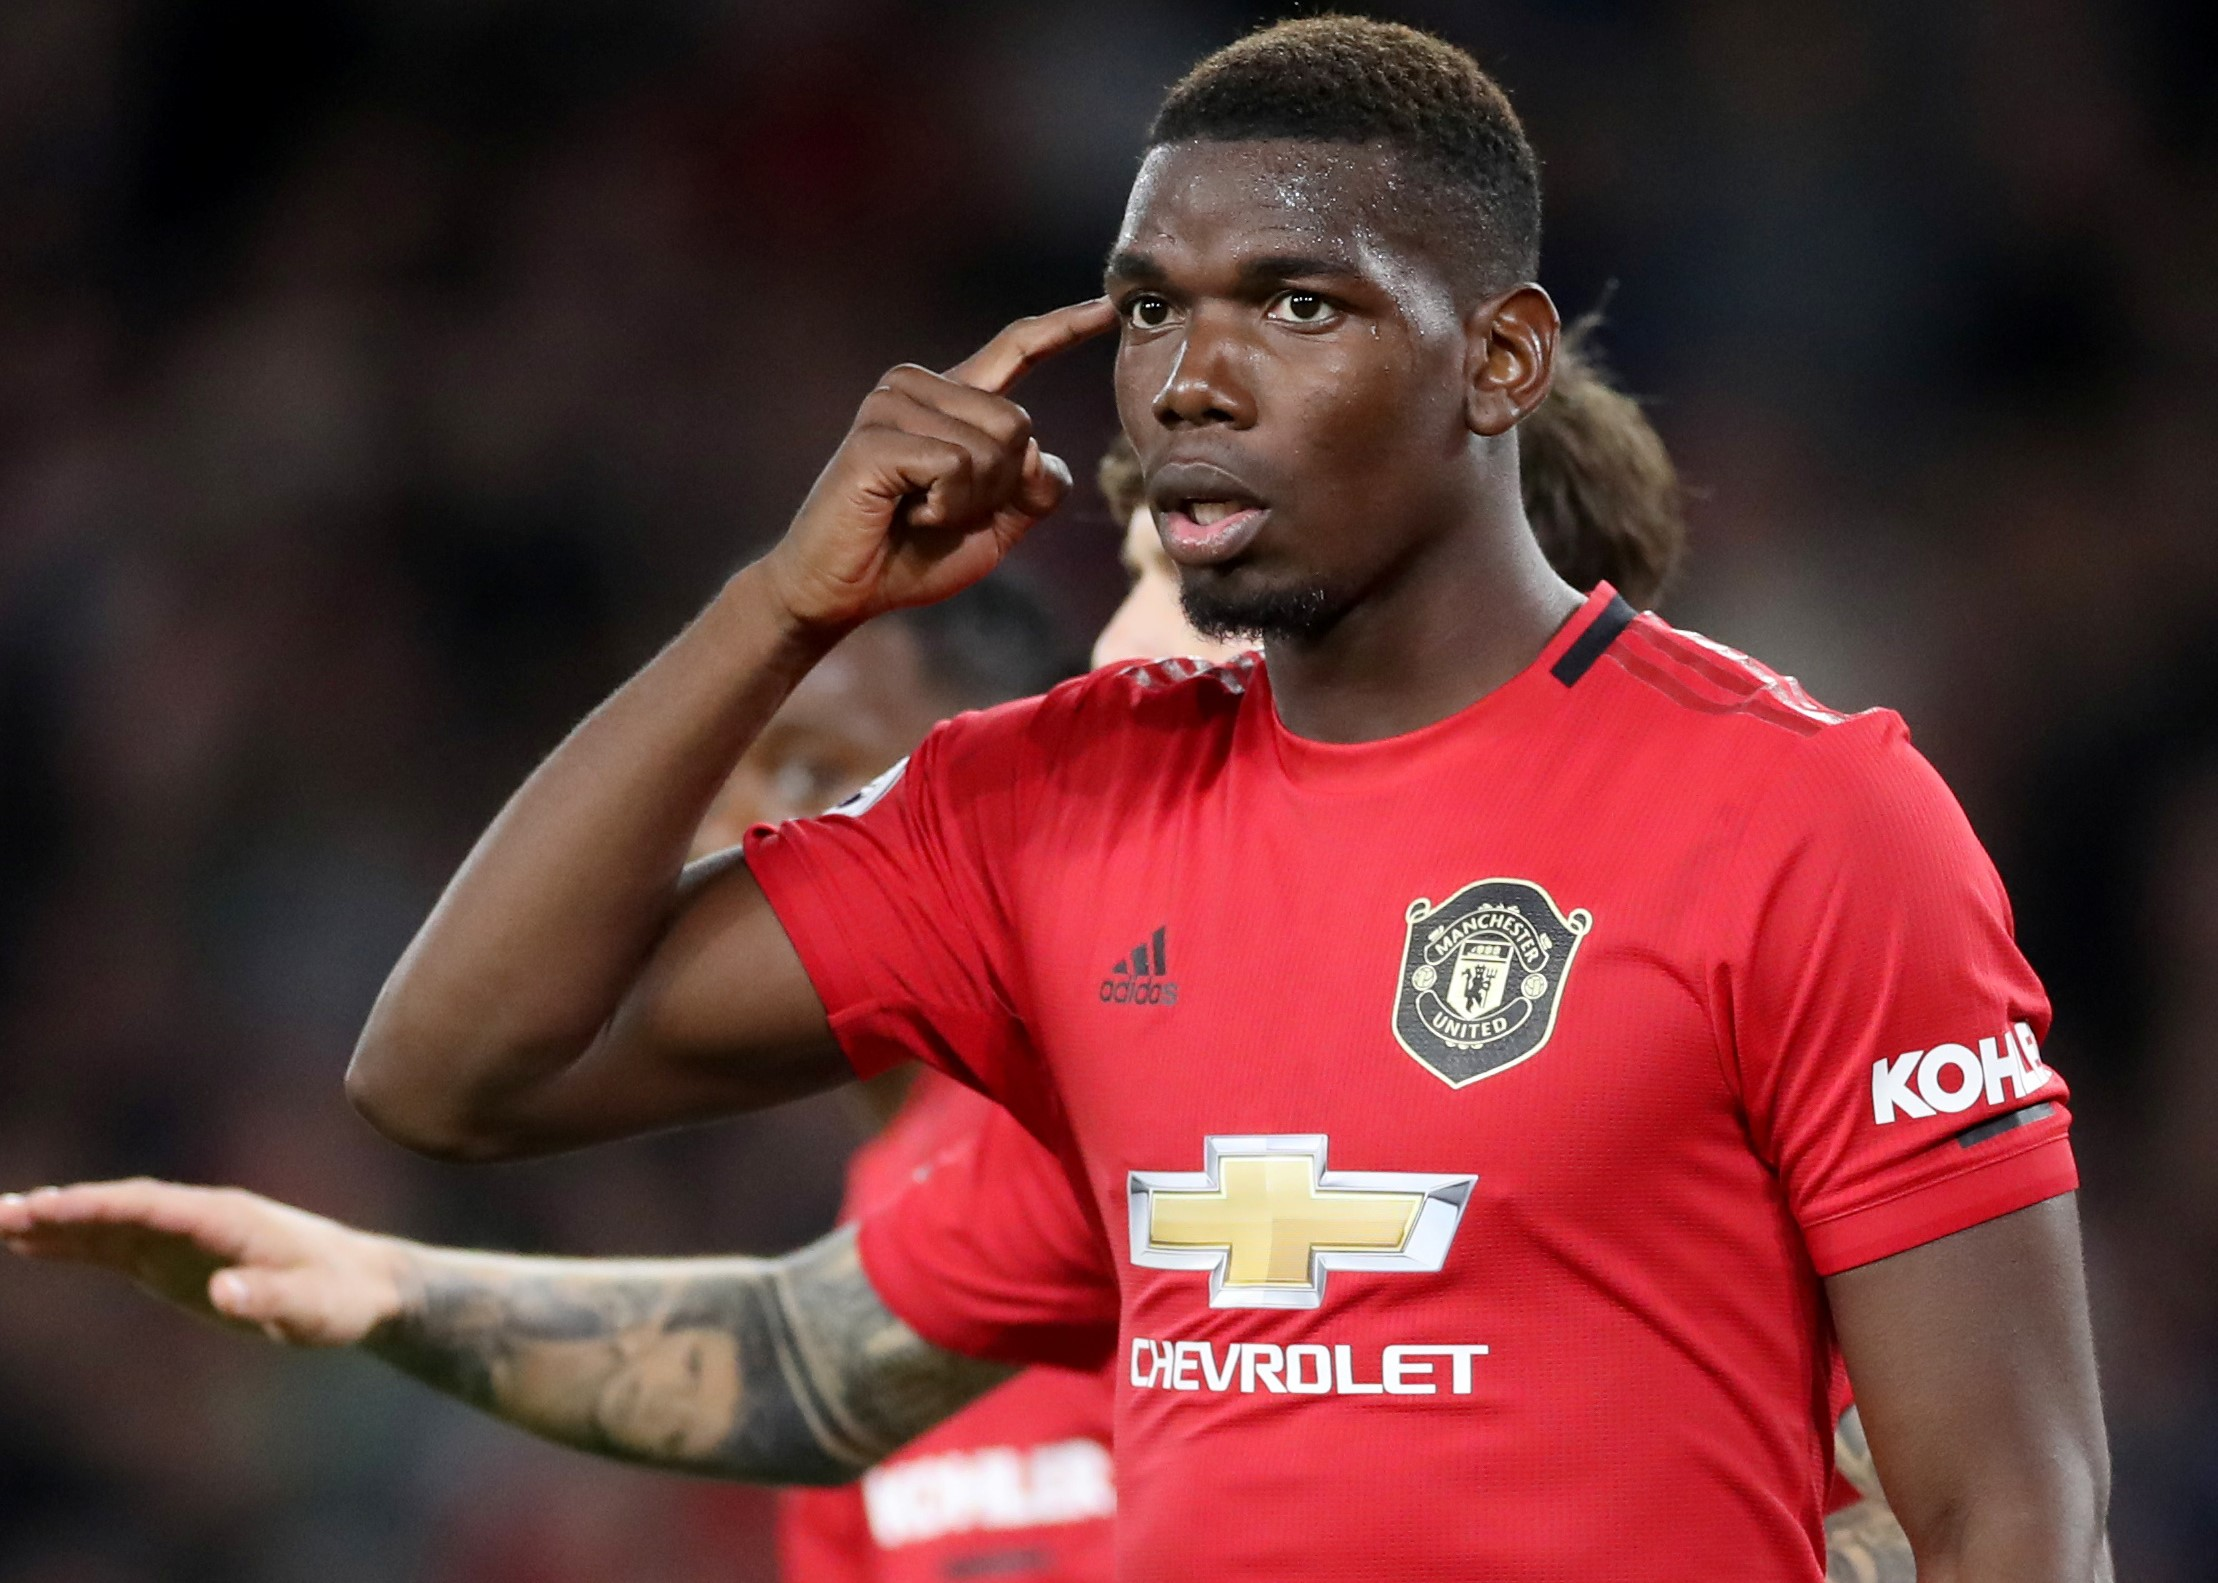 Football - Transferts - Le journal du mercato : Pogba parti pour rester à Manchester United ?